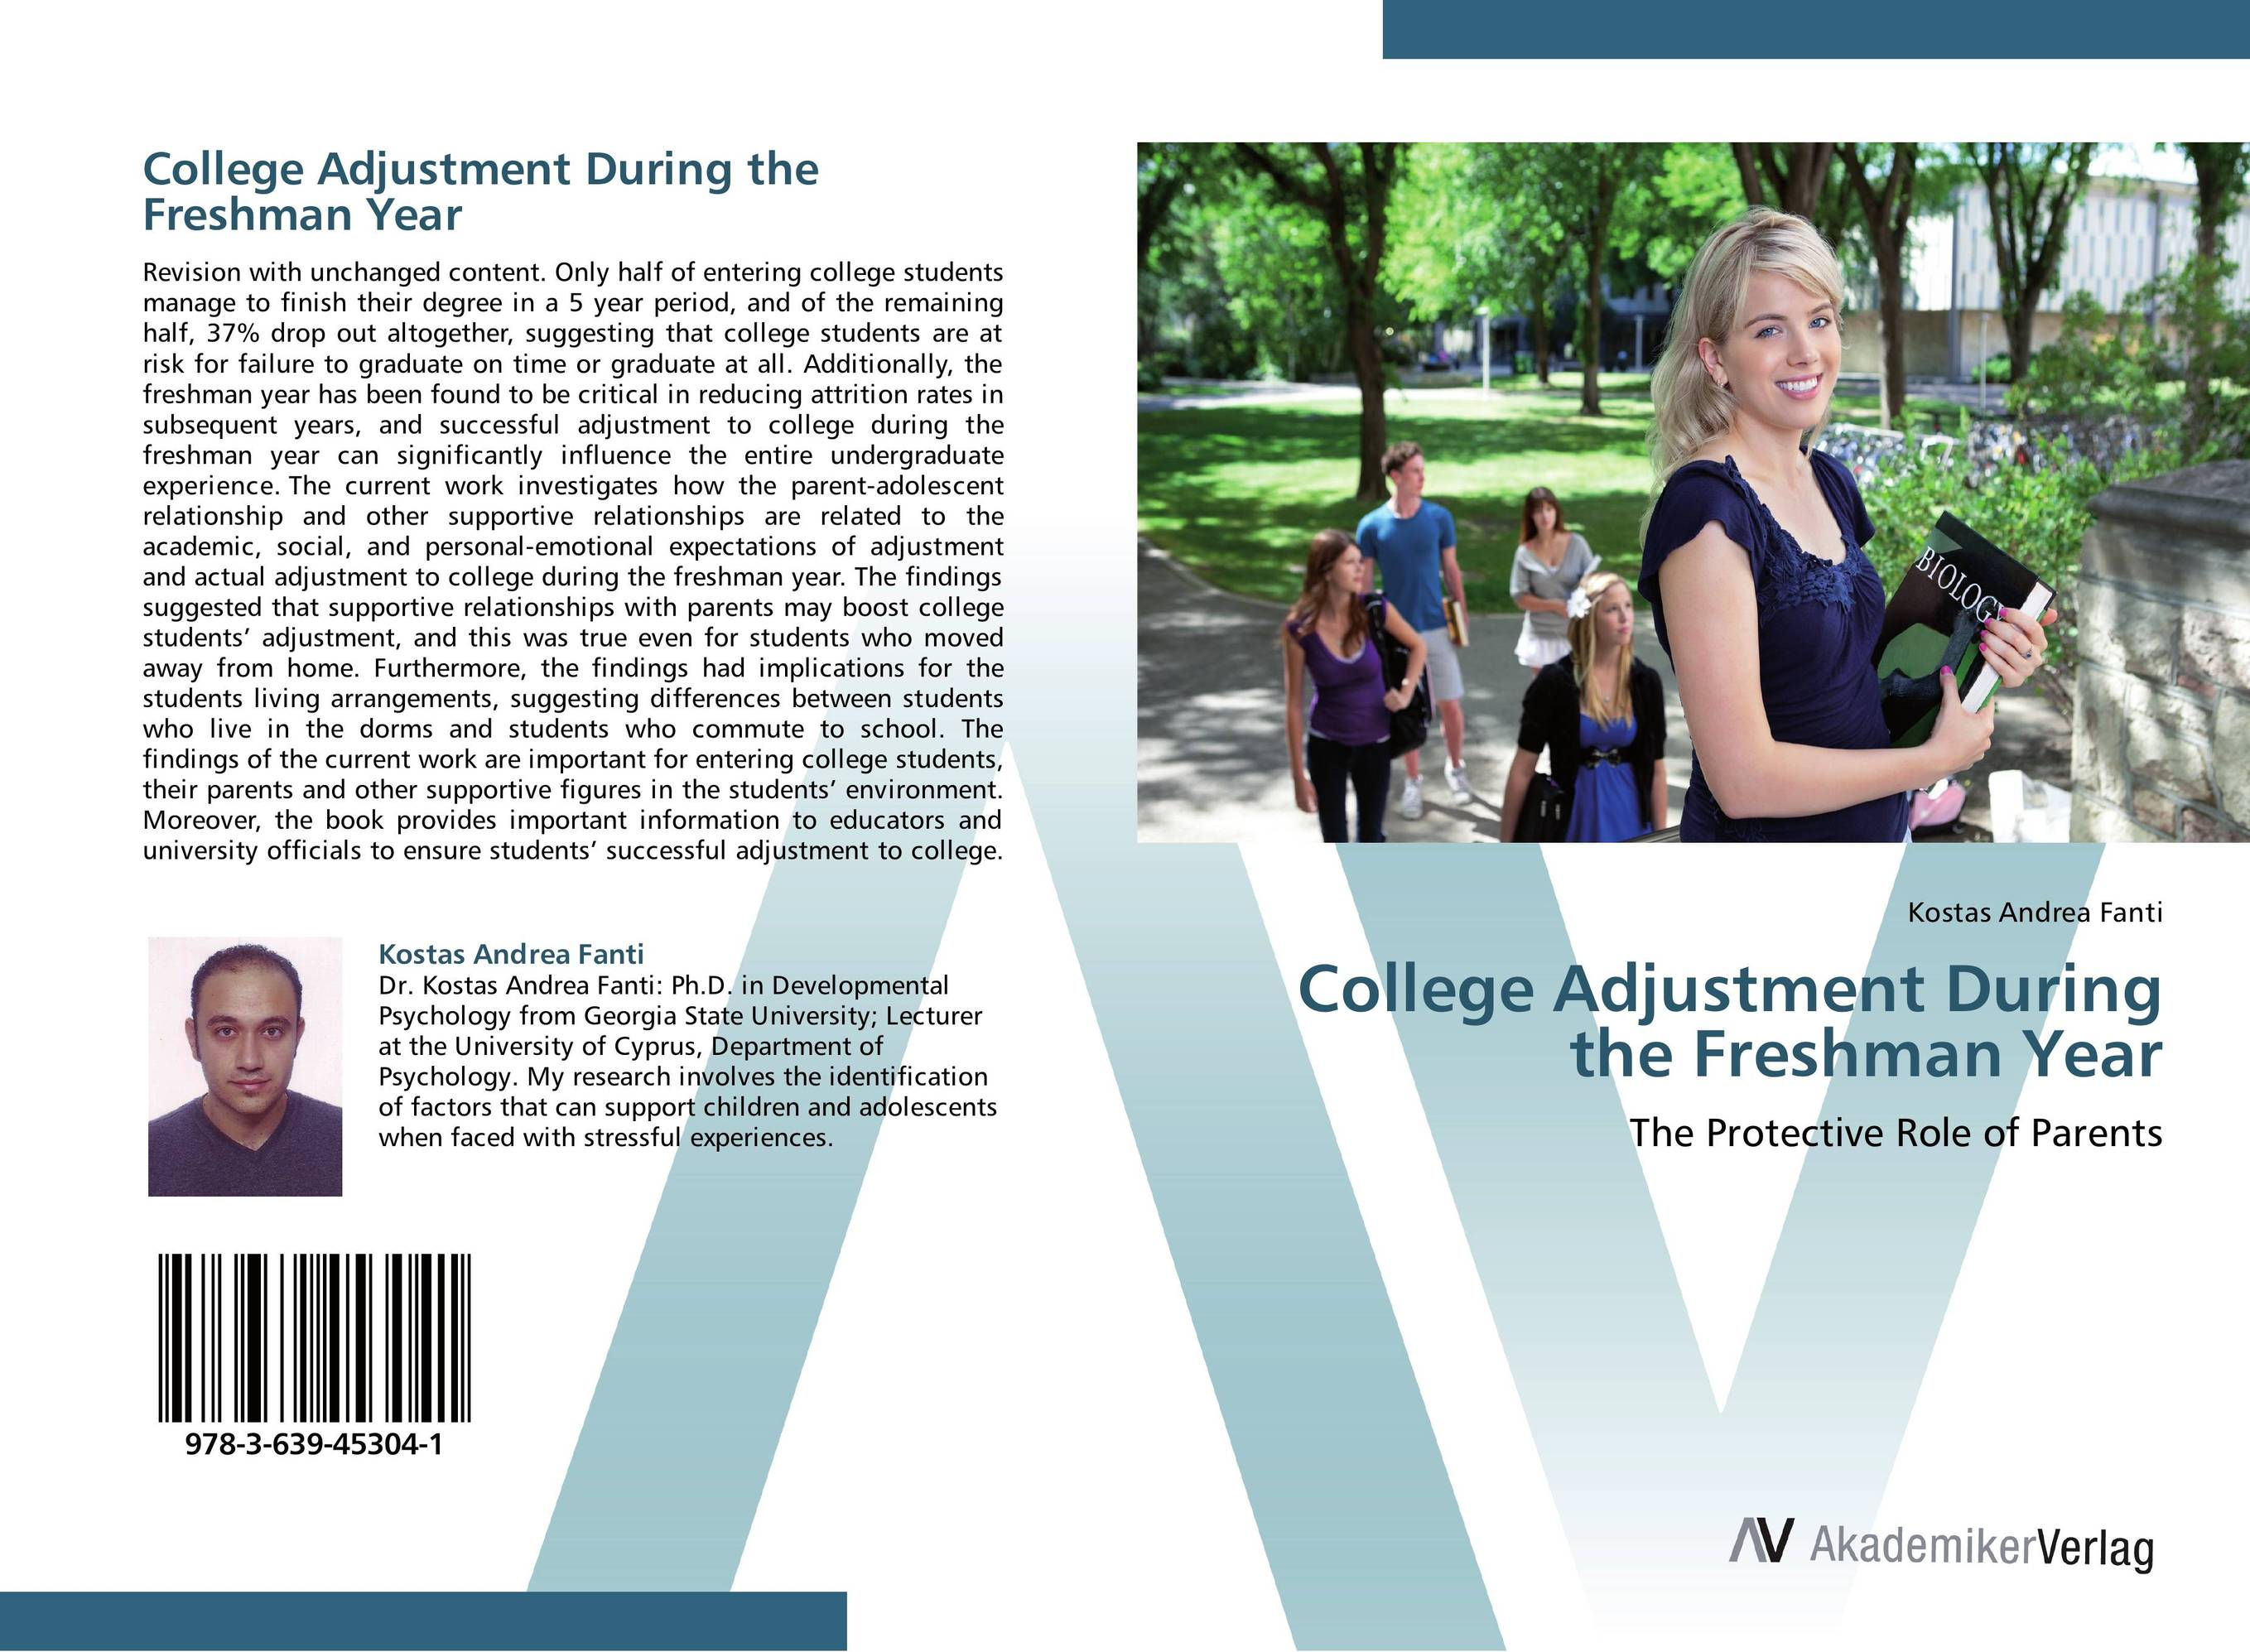 College Adjustment During the Freshman Year environmental literacy of undergraduate college students